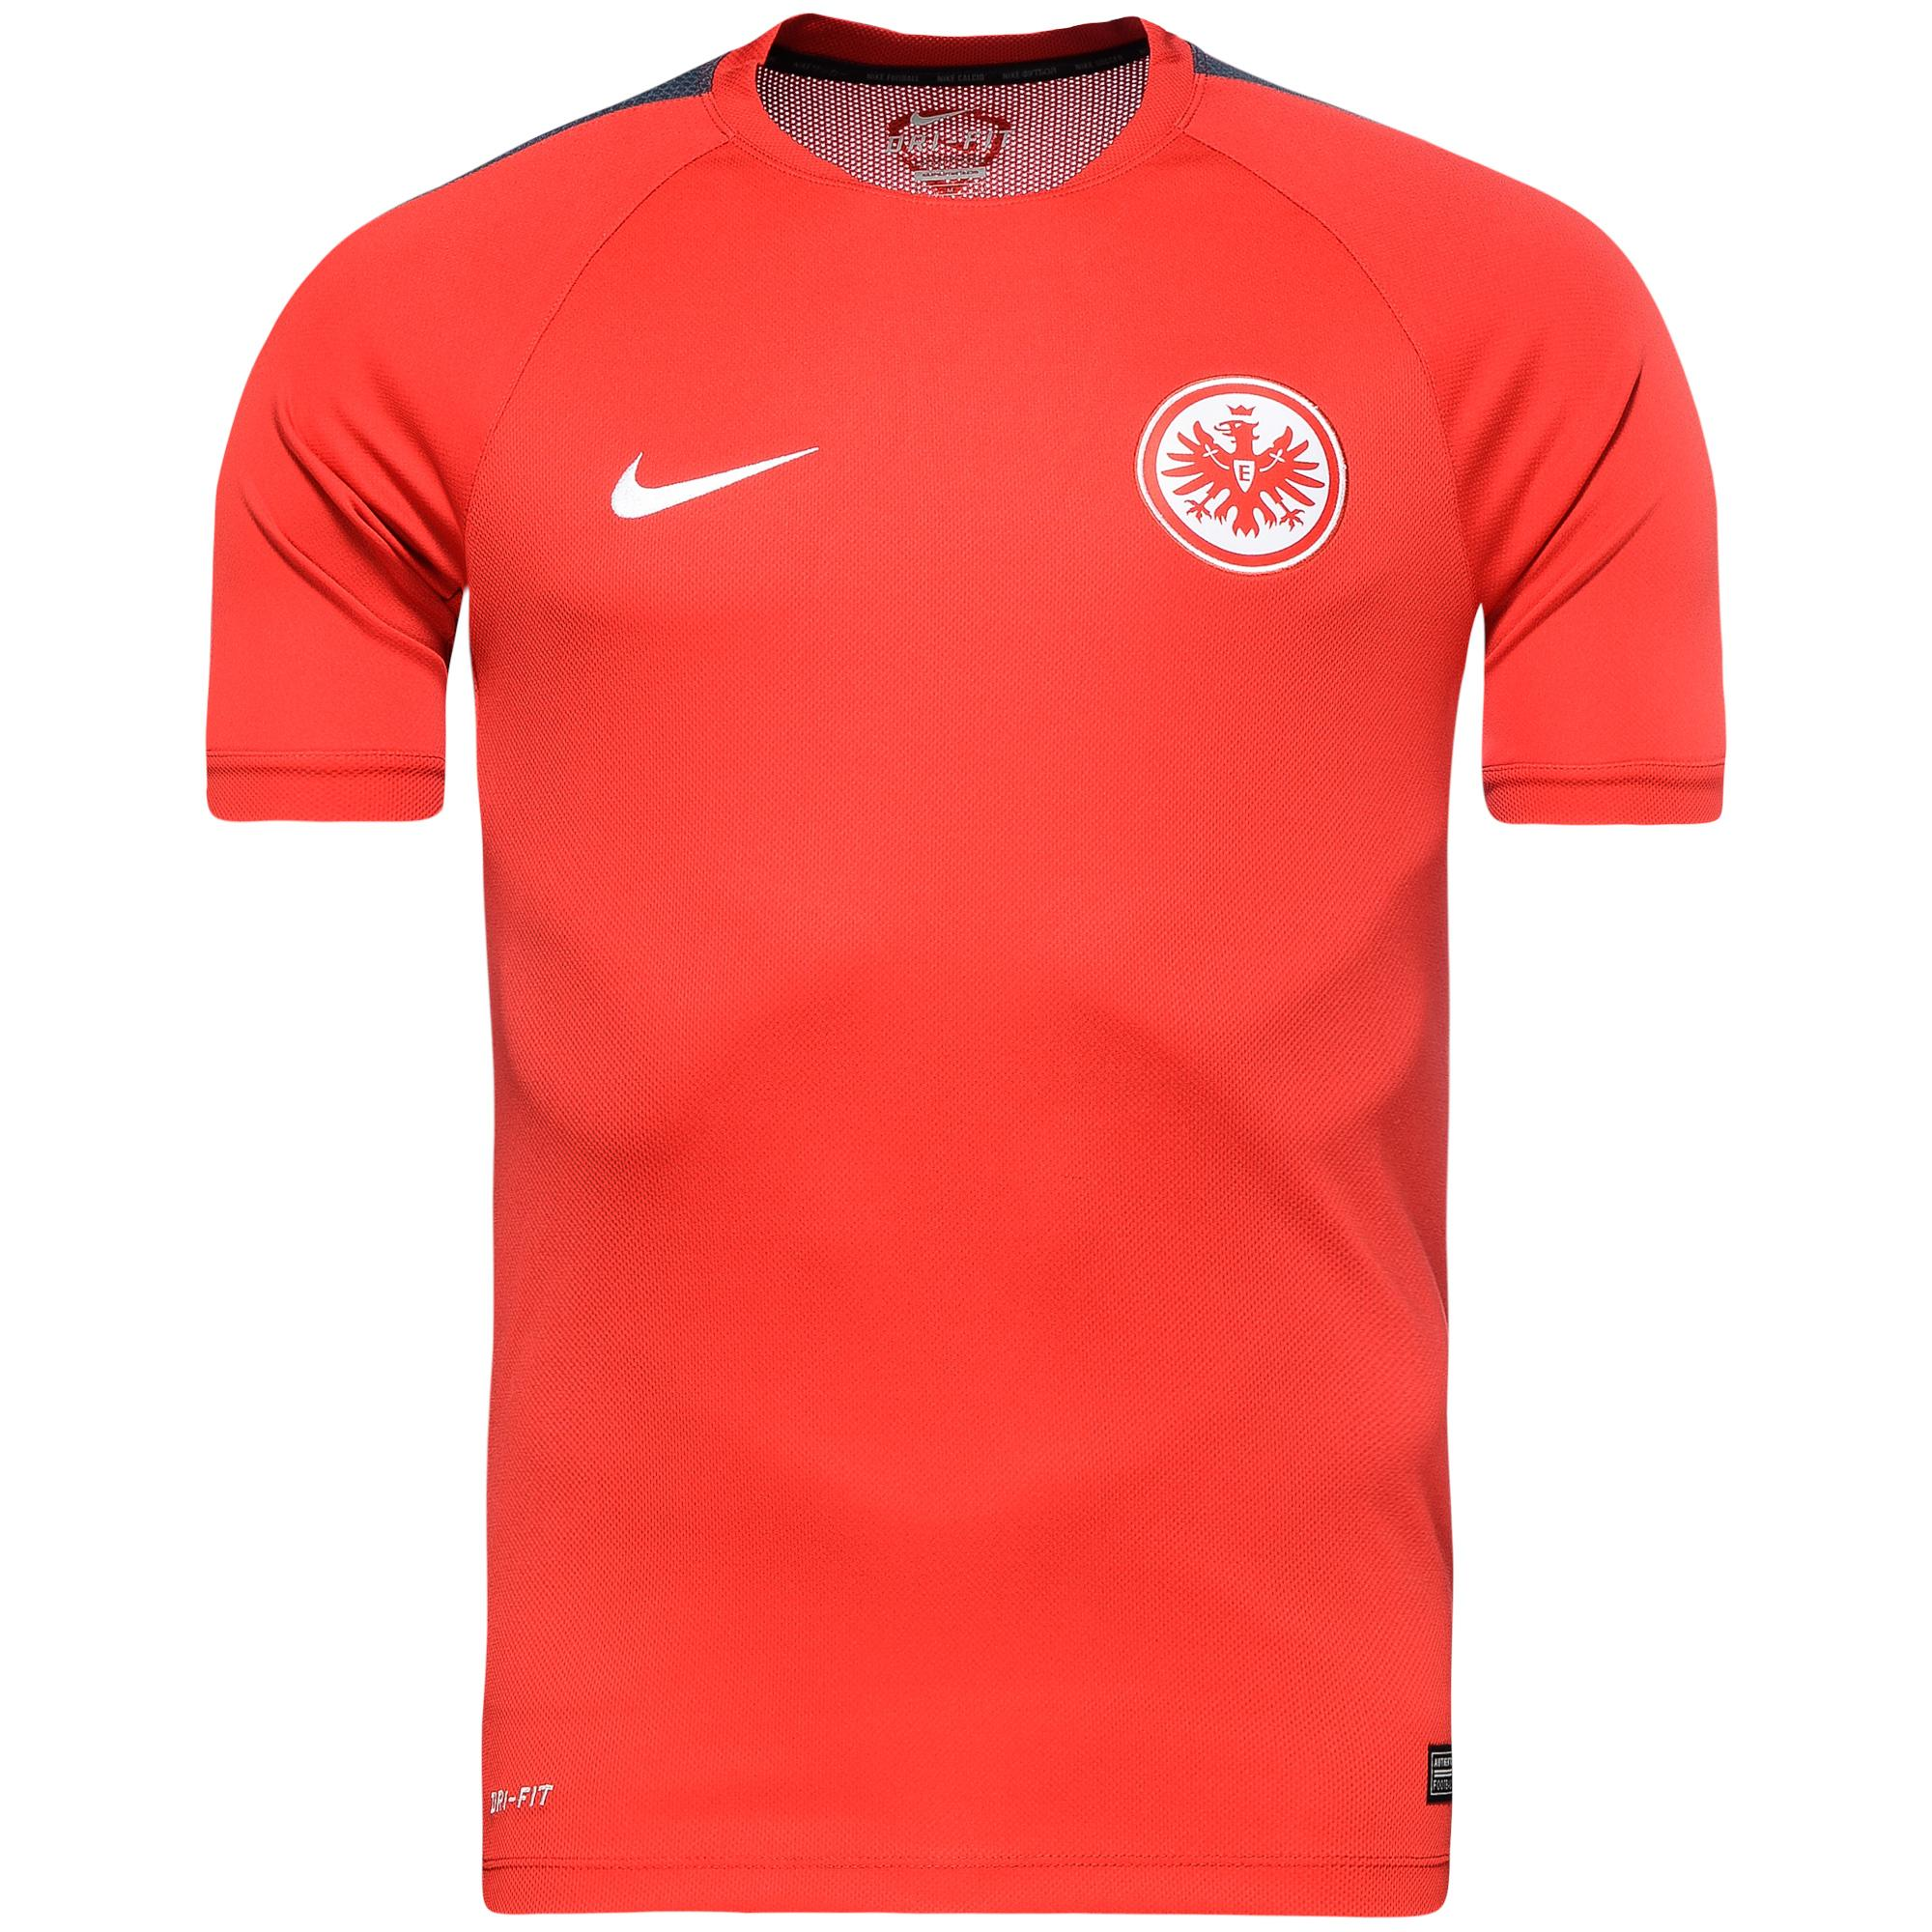 eintracht frankfurt training t shirt squad university. Black Bedroom Furniture Sets. Home Design Ideas